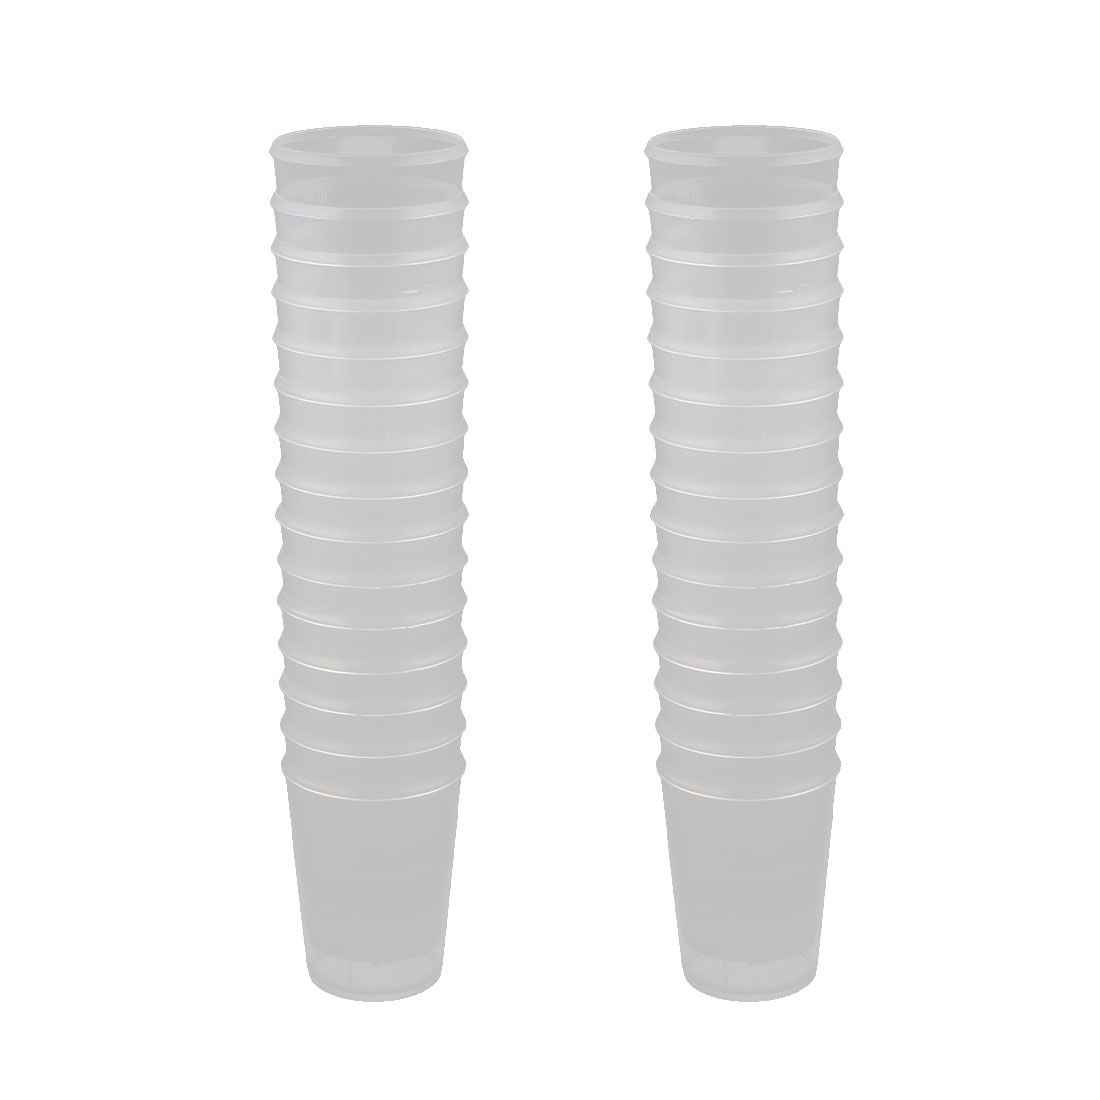 30pcs 50mL Capacity Plastic Graduated Scale Liquid Water Measuring Cup Beaker for Lab Kitchen